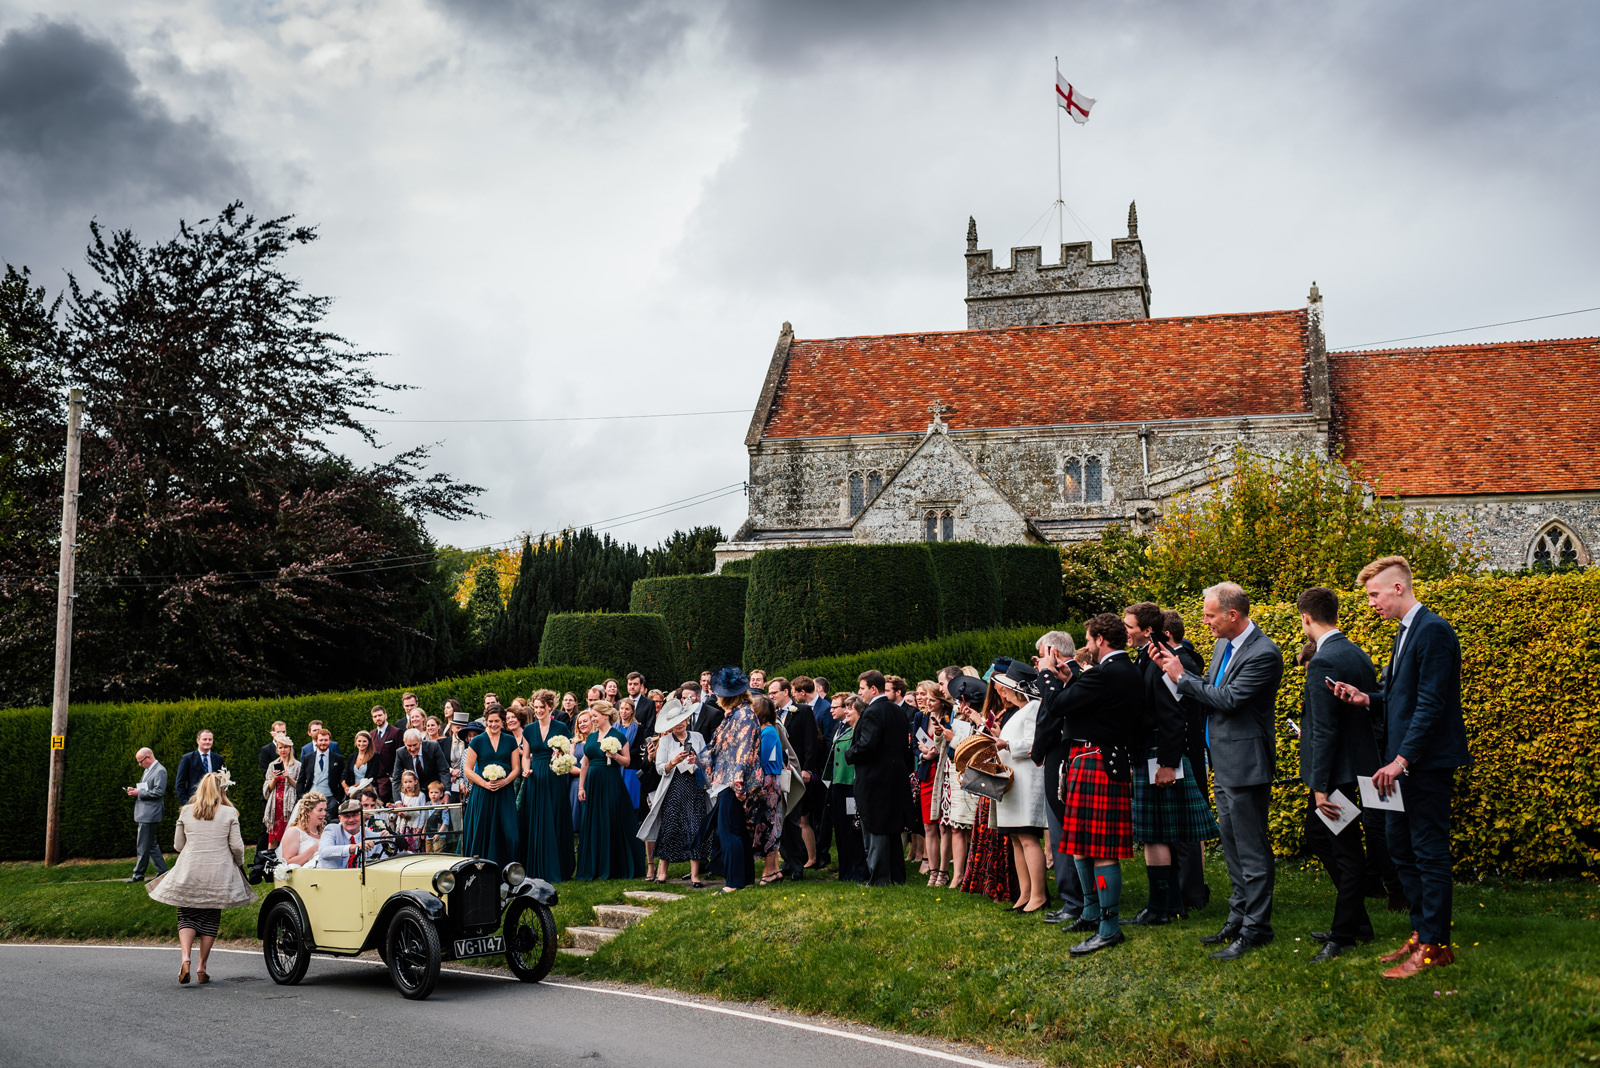 Typical English wedding scene